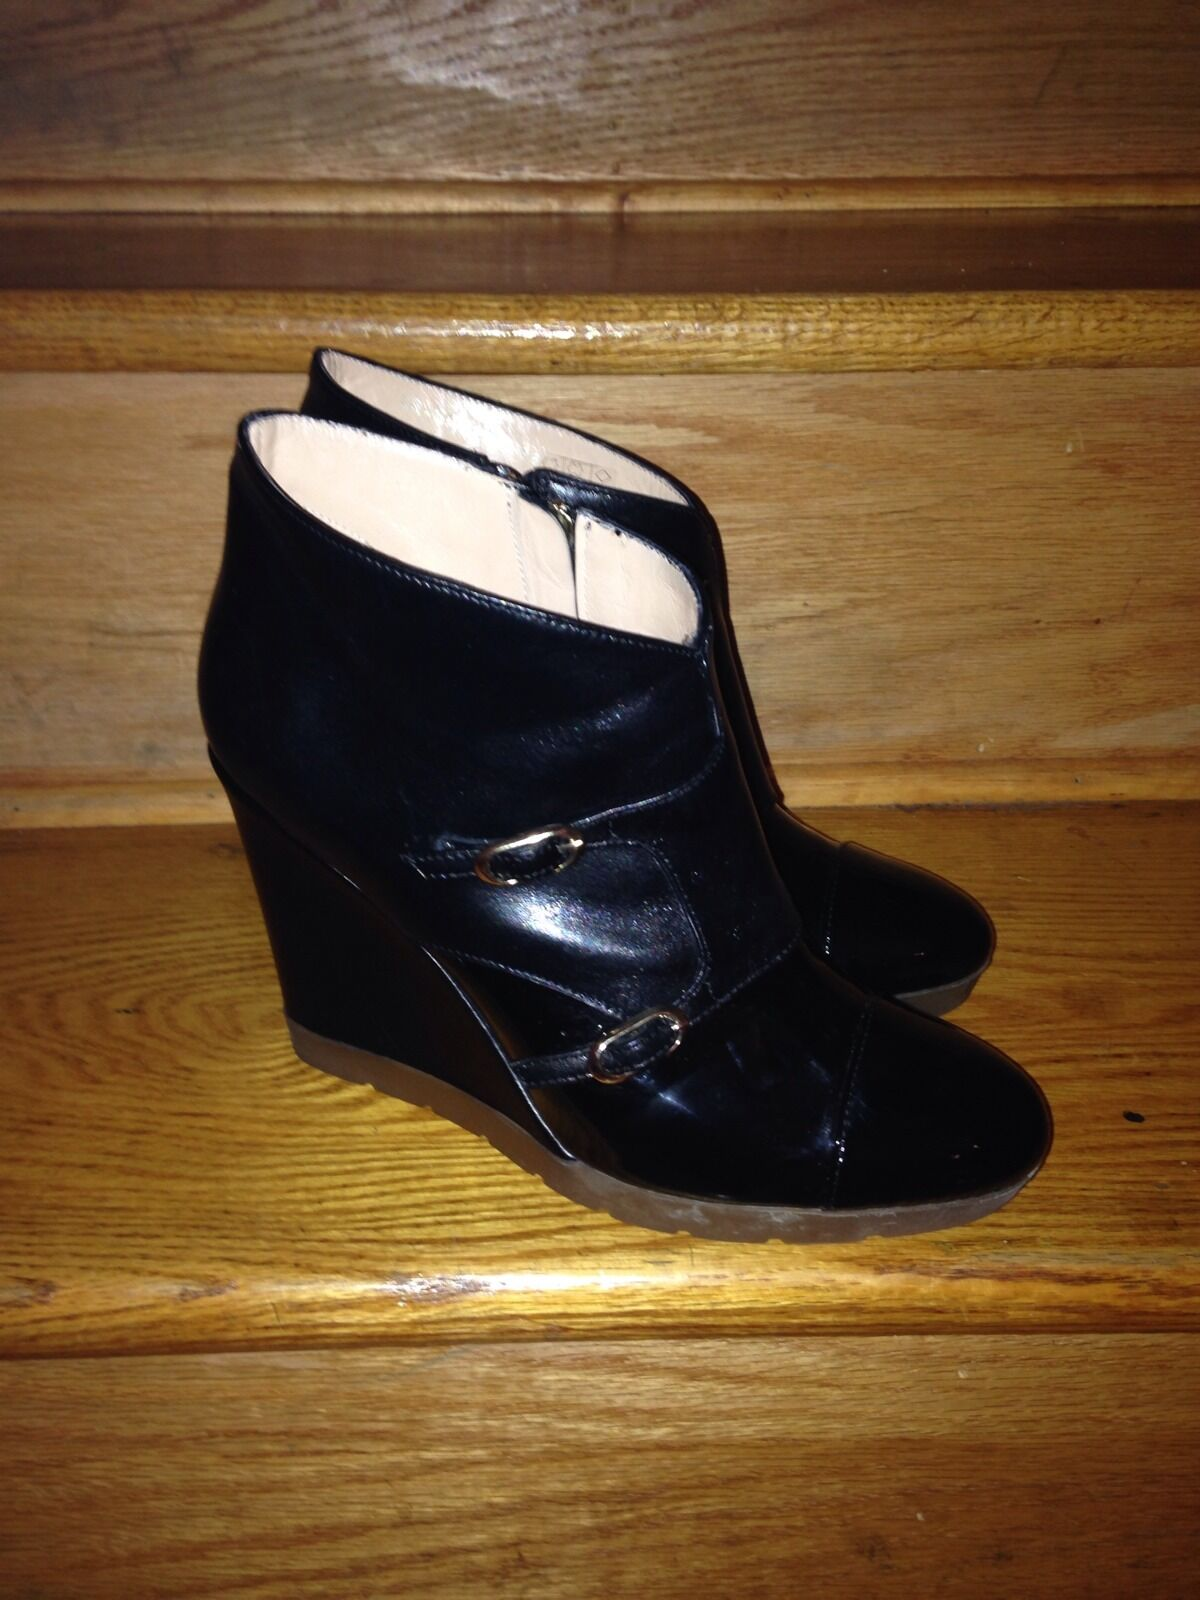 Carlo Pazzolini Wedge Platform Platform Platform Designer shoes Booties Size 8 Patent Leather 0d3f0f